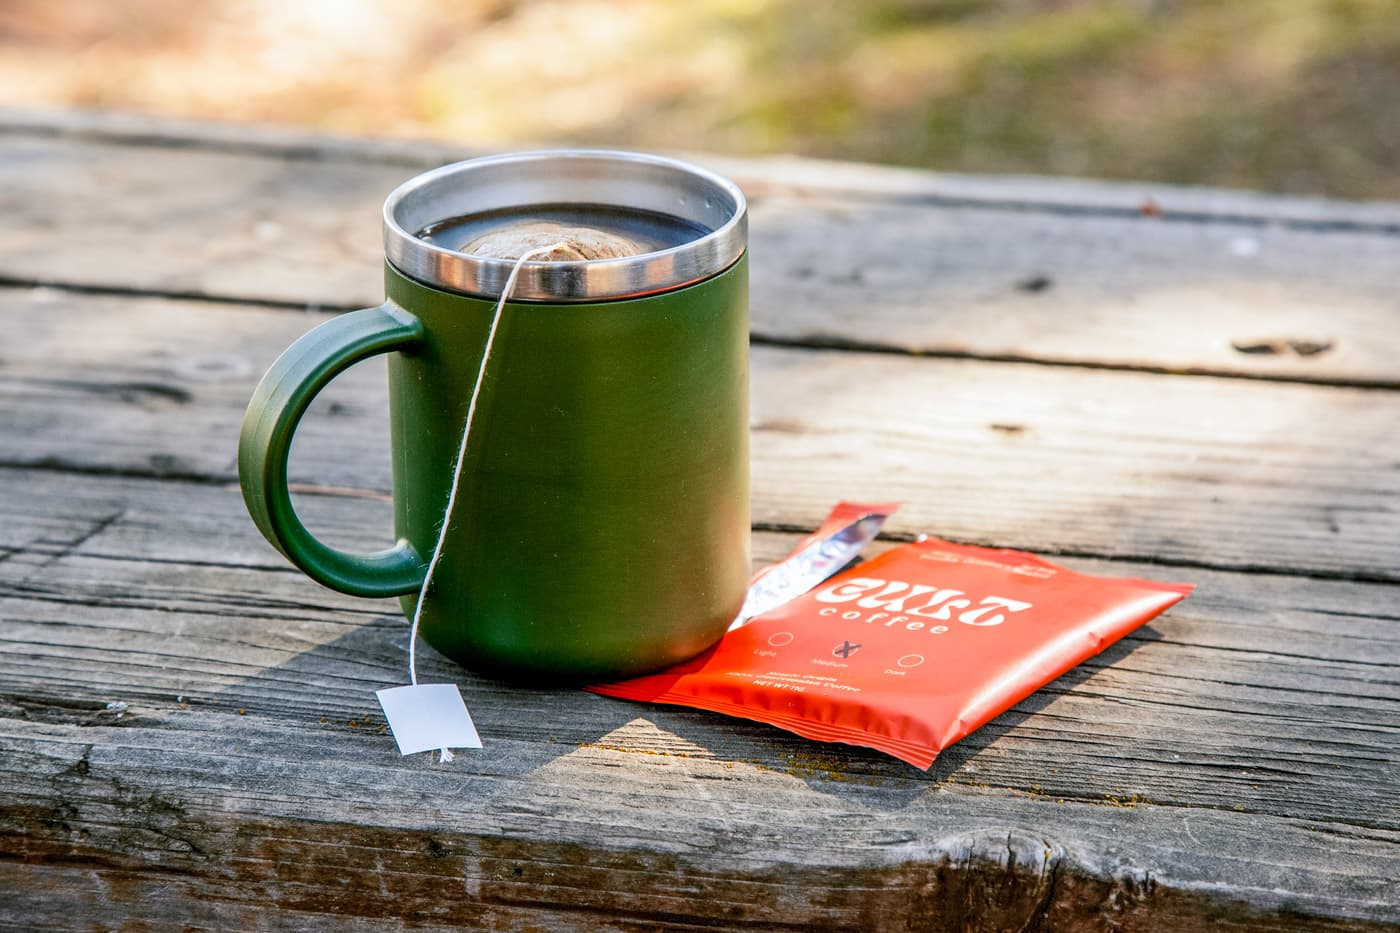 A green mug of coffee on a camping table